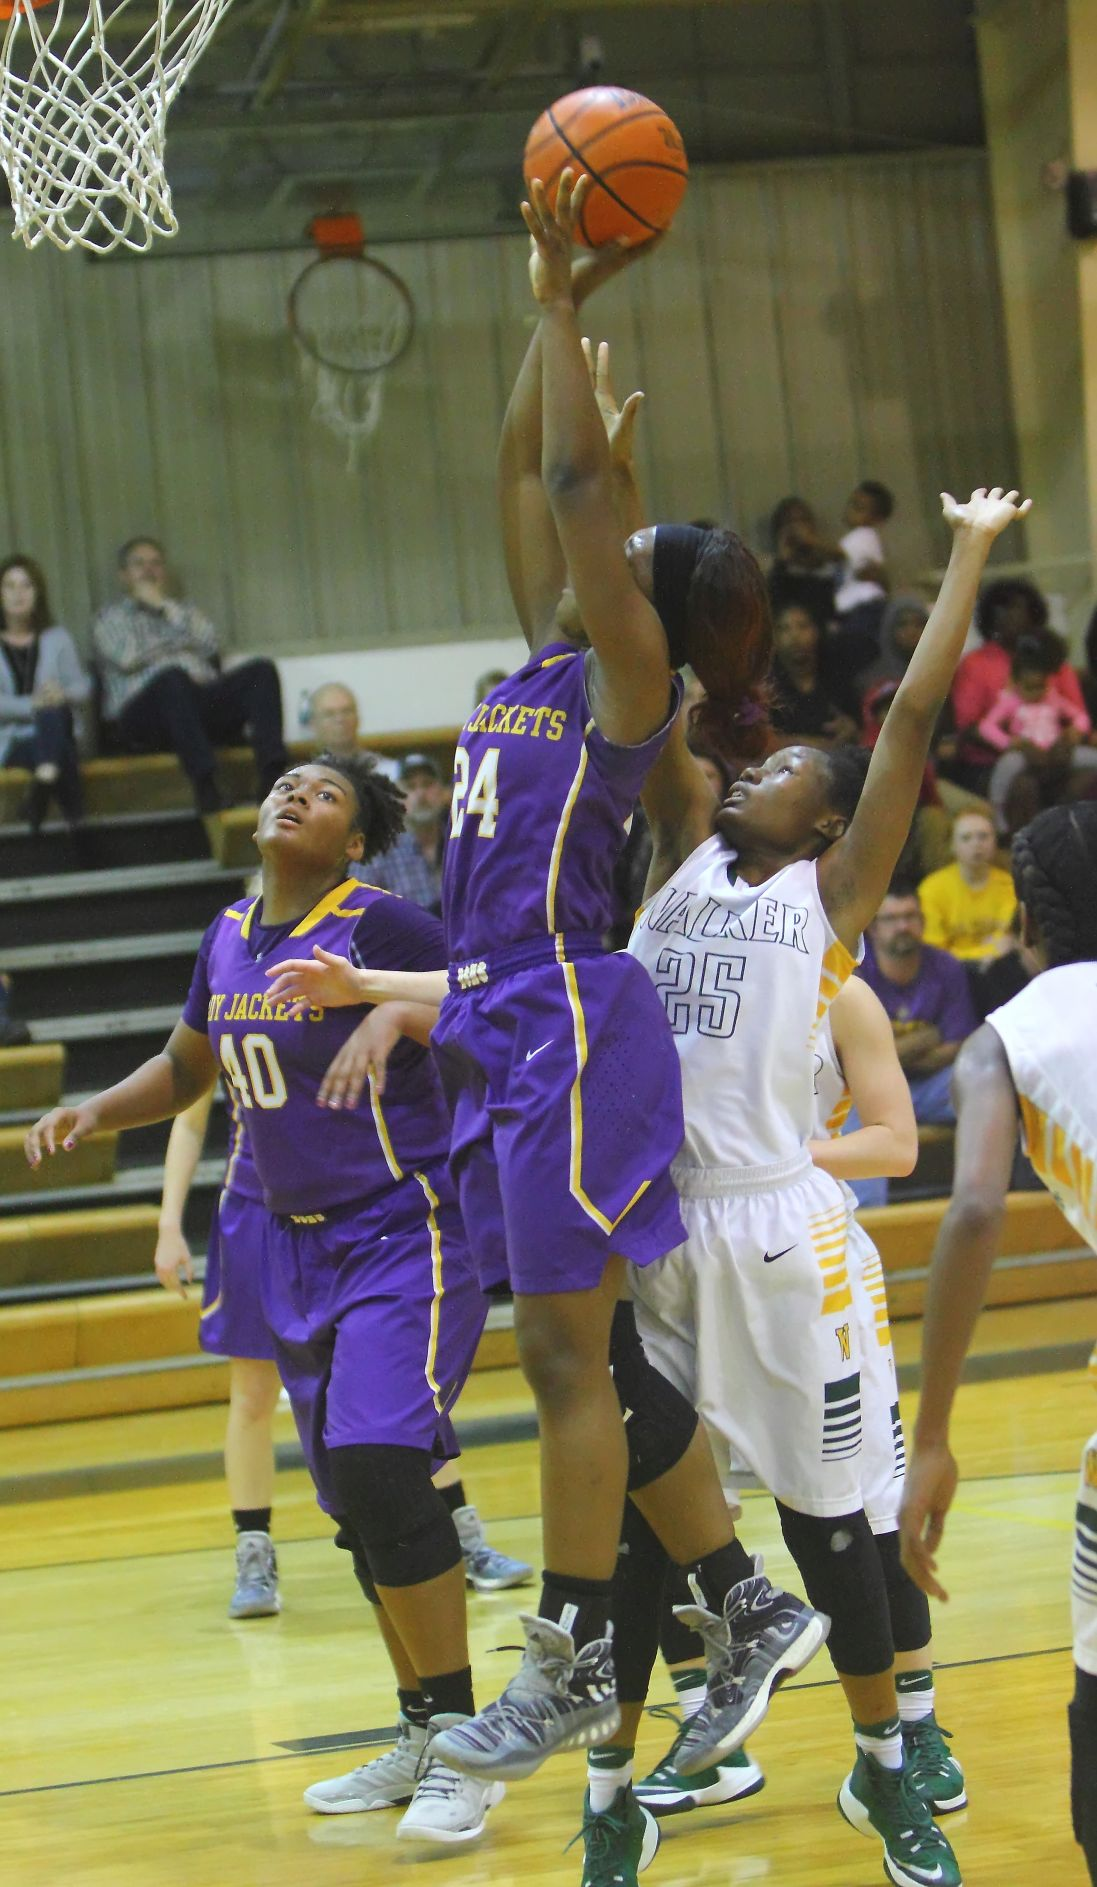 walker-dshs girls trmeeka spikes